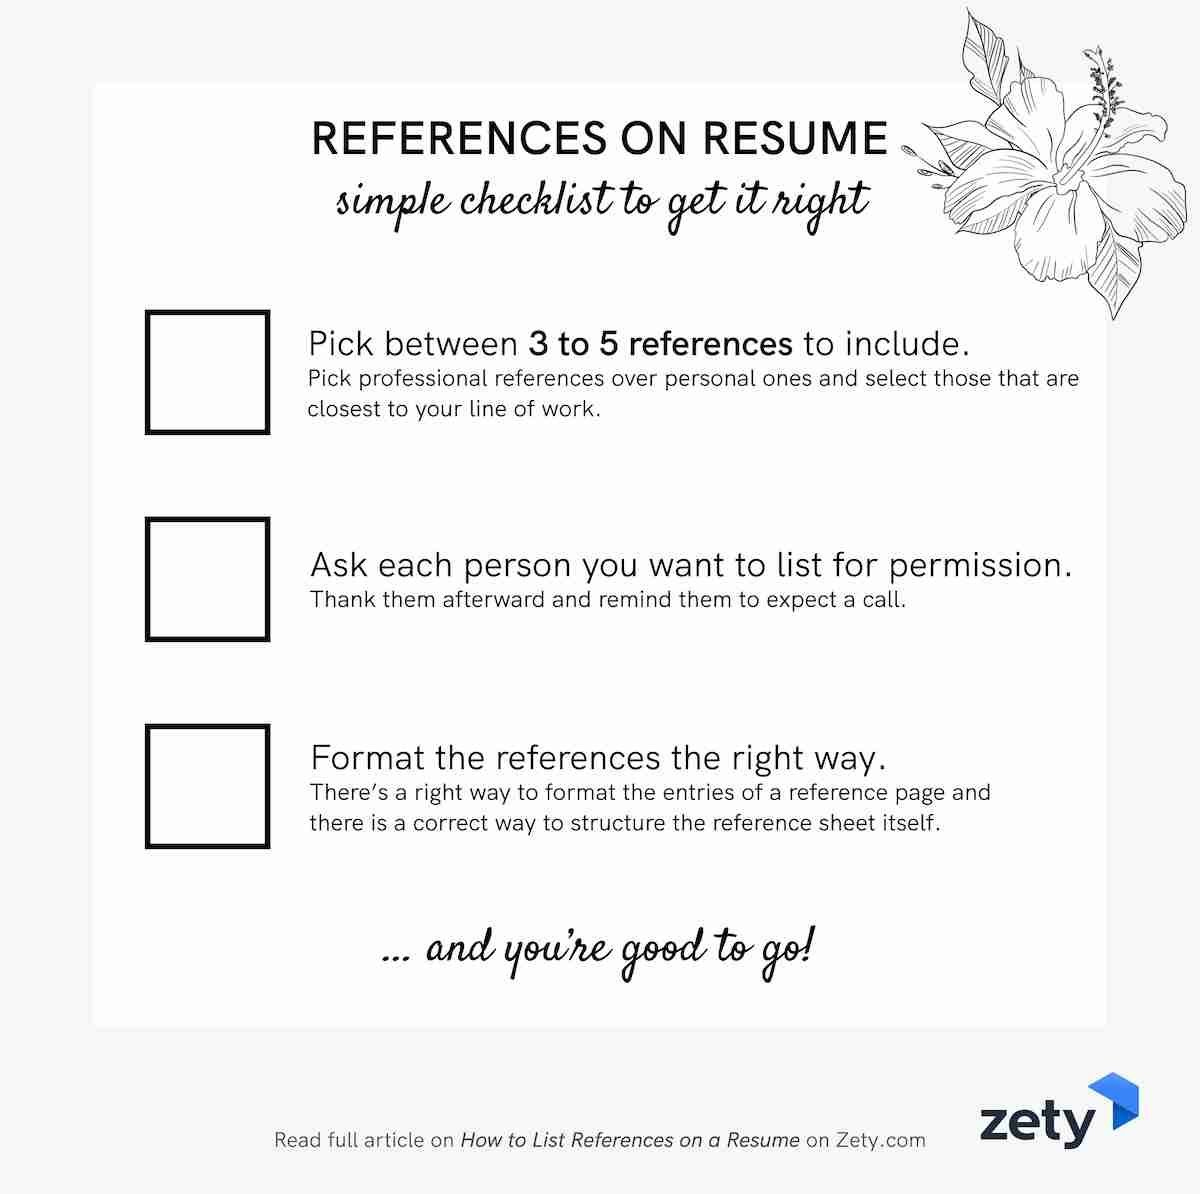 References on resume: checklist